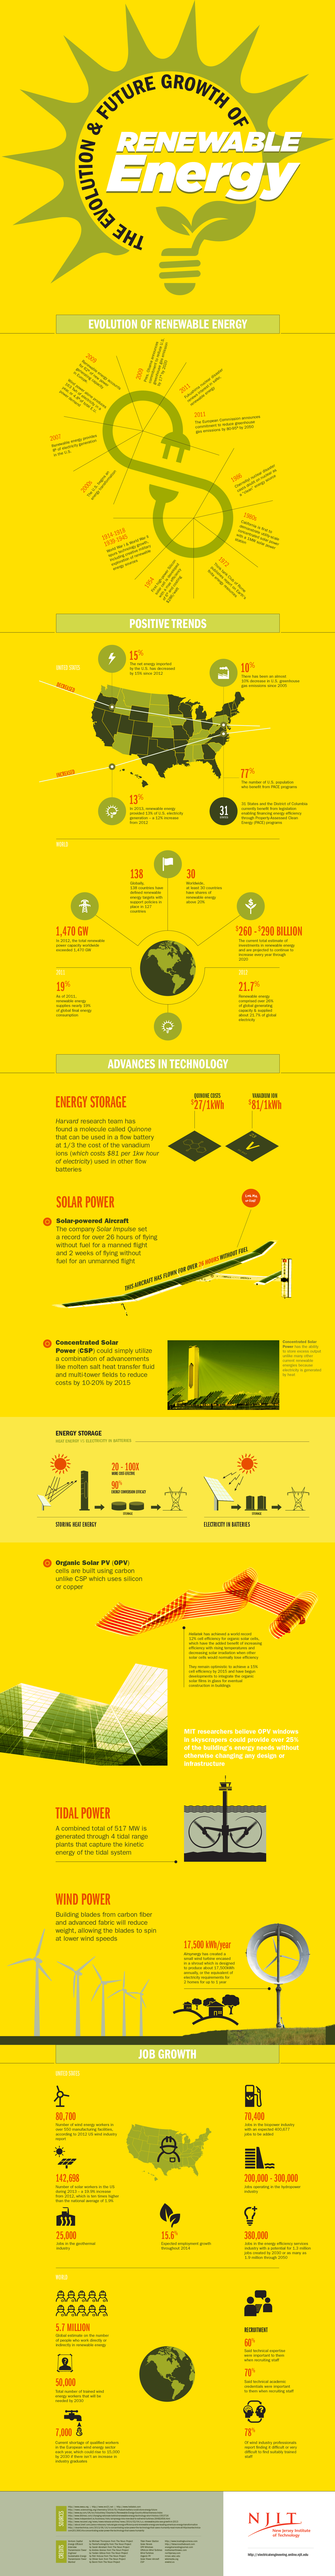 This Infographic Shows Why Renewable Energy Is Here To